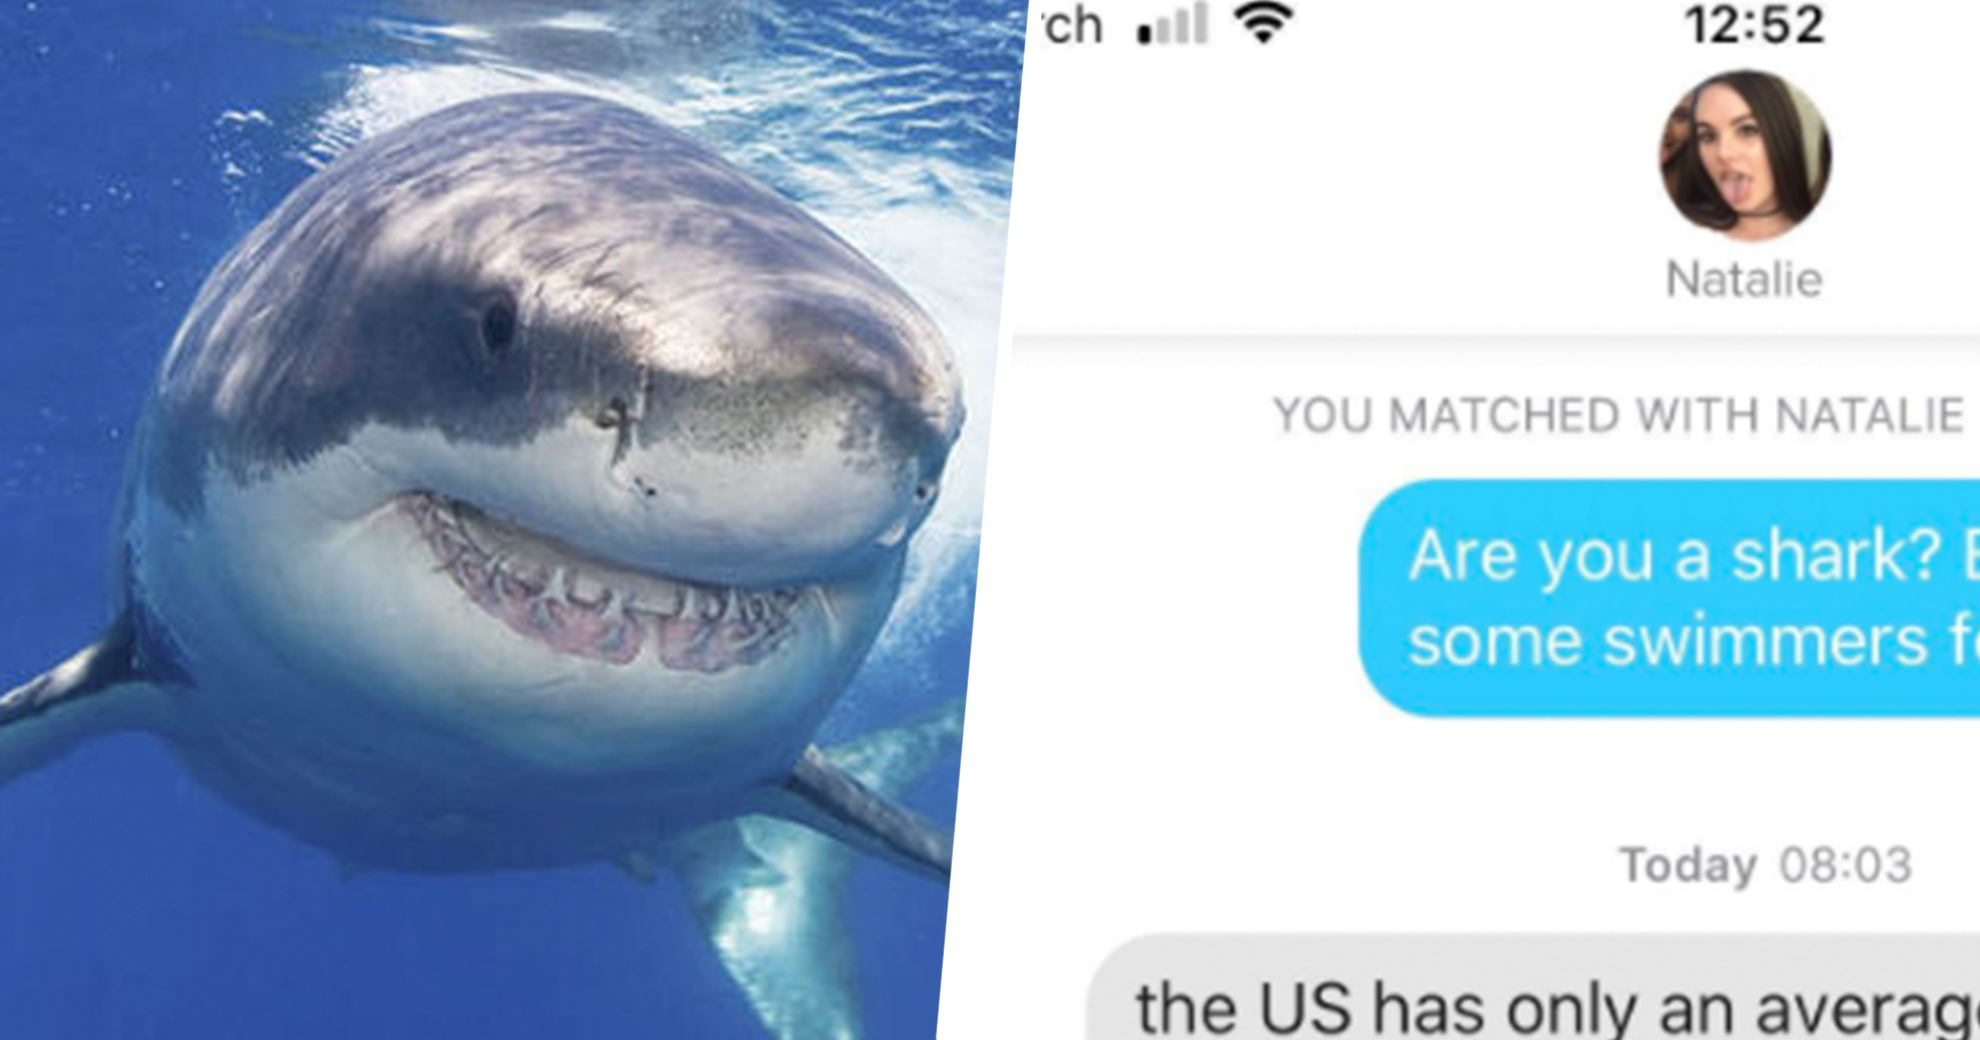 Dude Tries To Impress Tinder Match With Foul Shark-Themed Pickup Line, Spectacularly Backfires